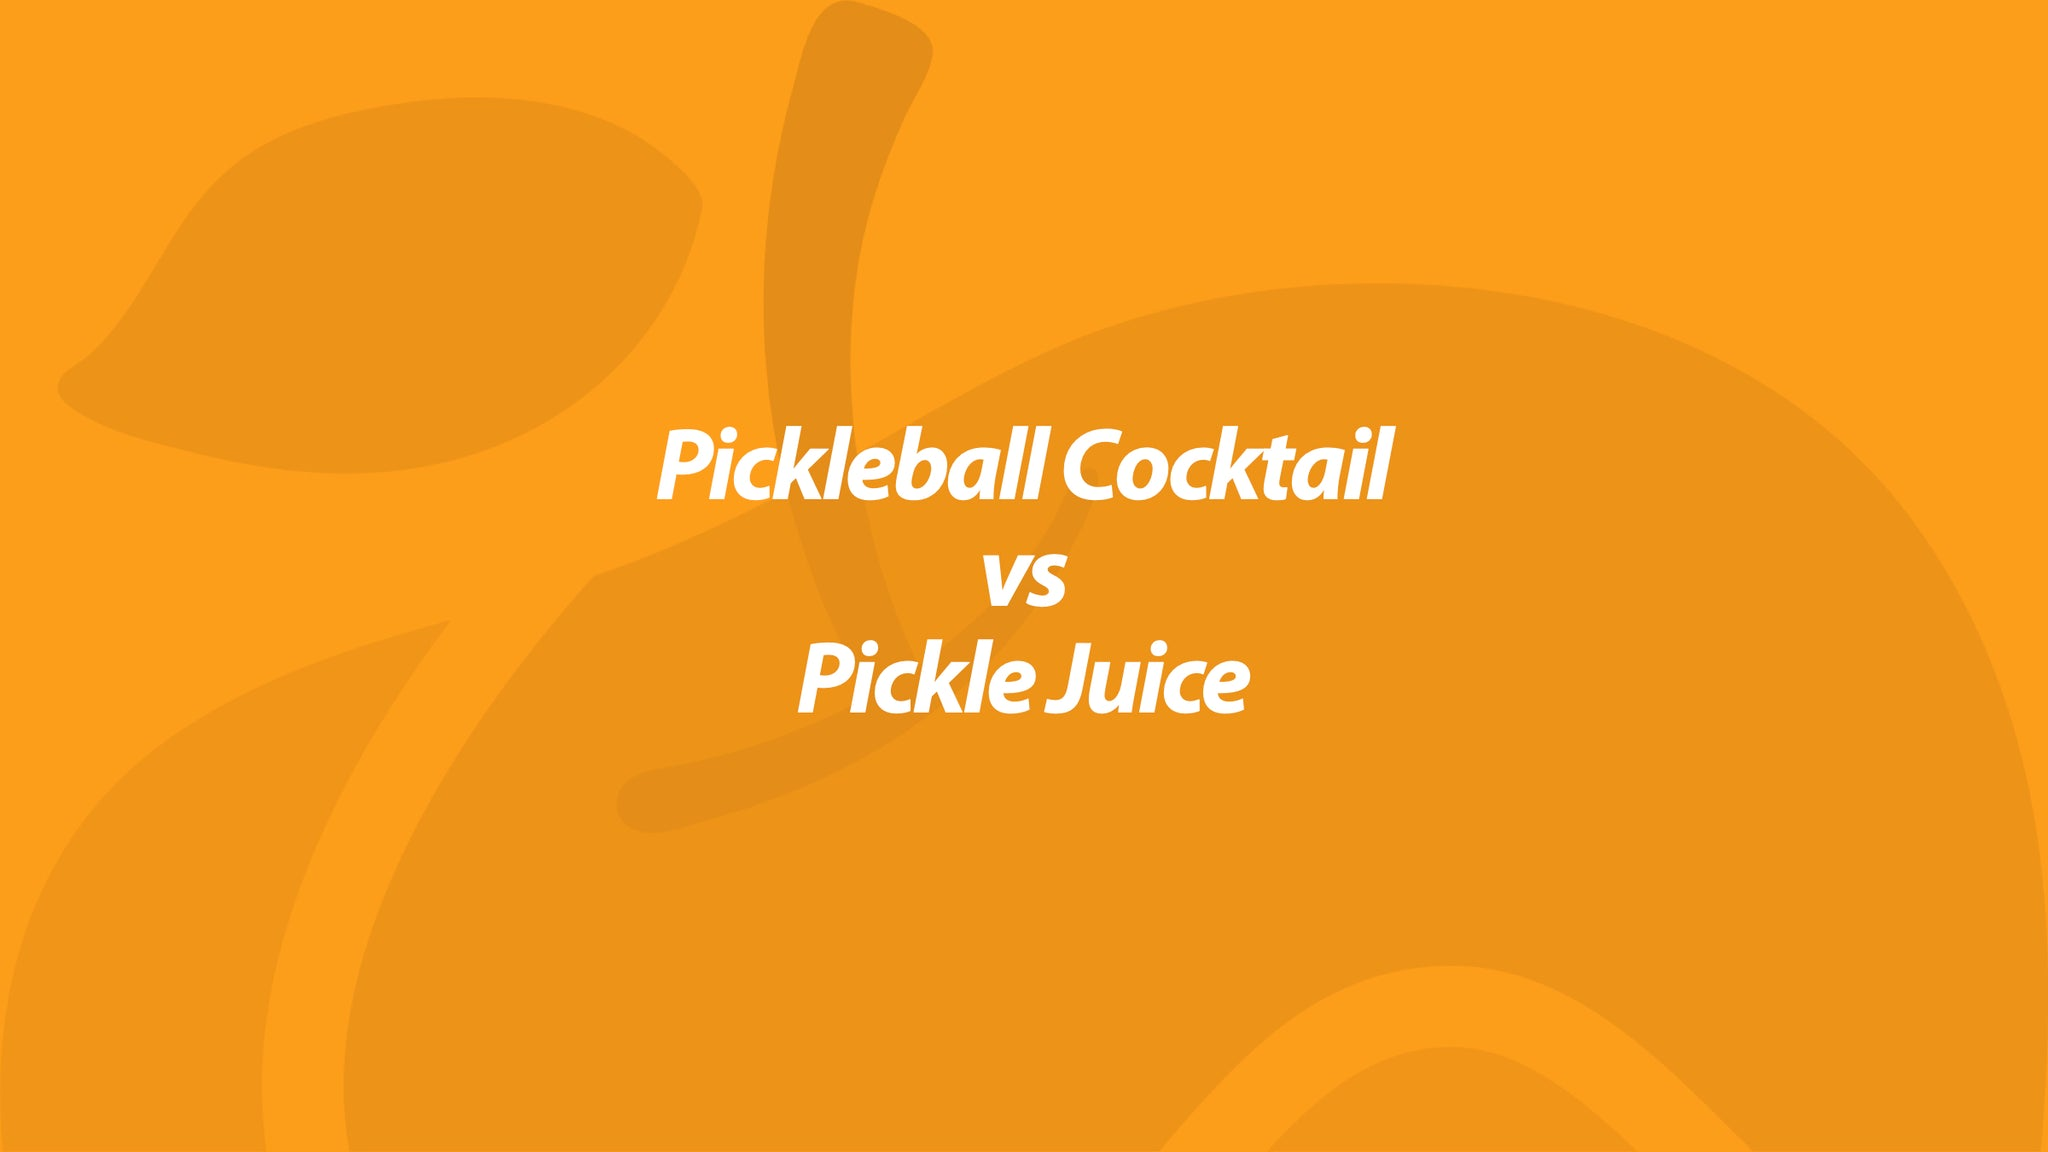 Pickleball Cocktail vs Pickle Juice